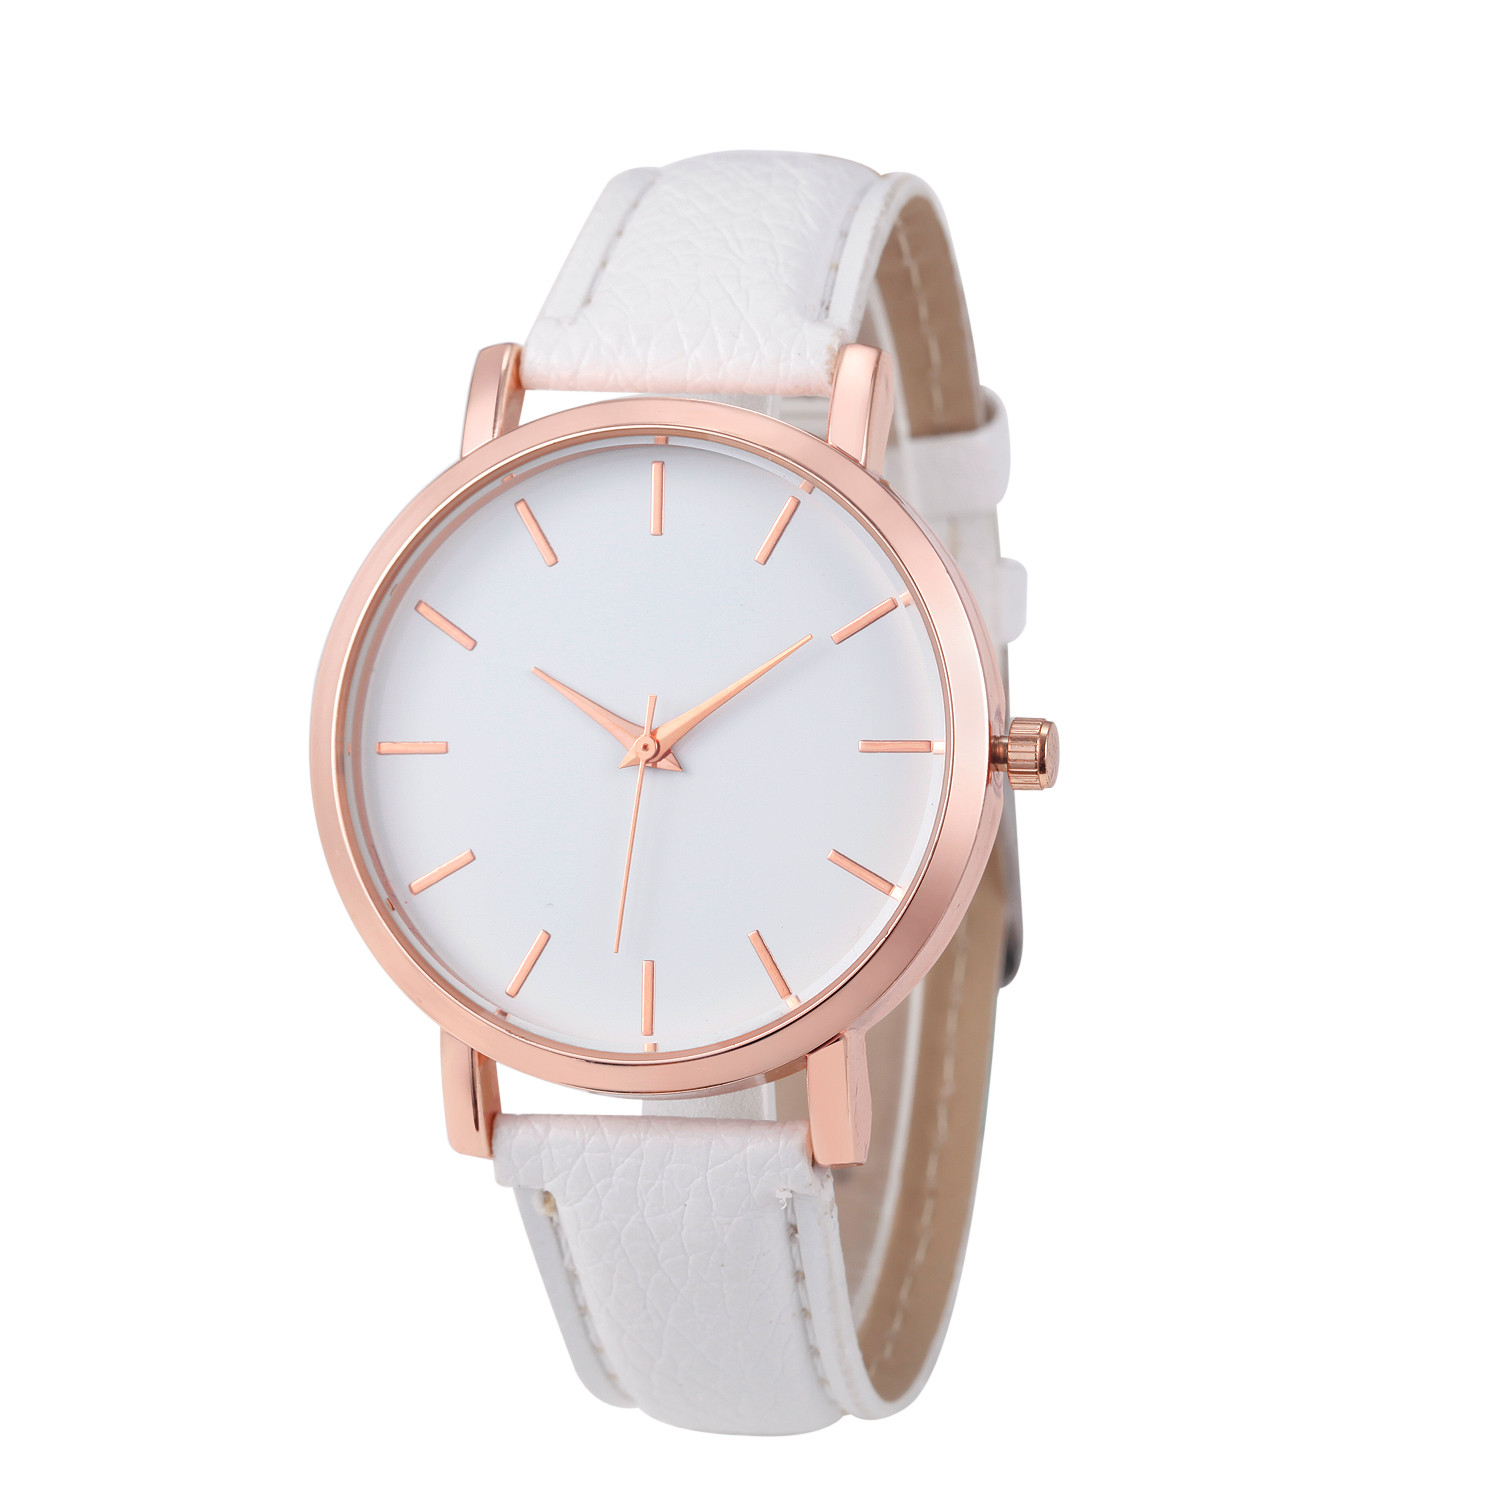 Fashion Lady Watch with White Leather Strap